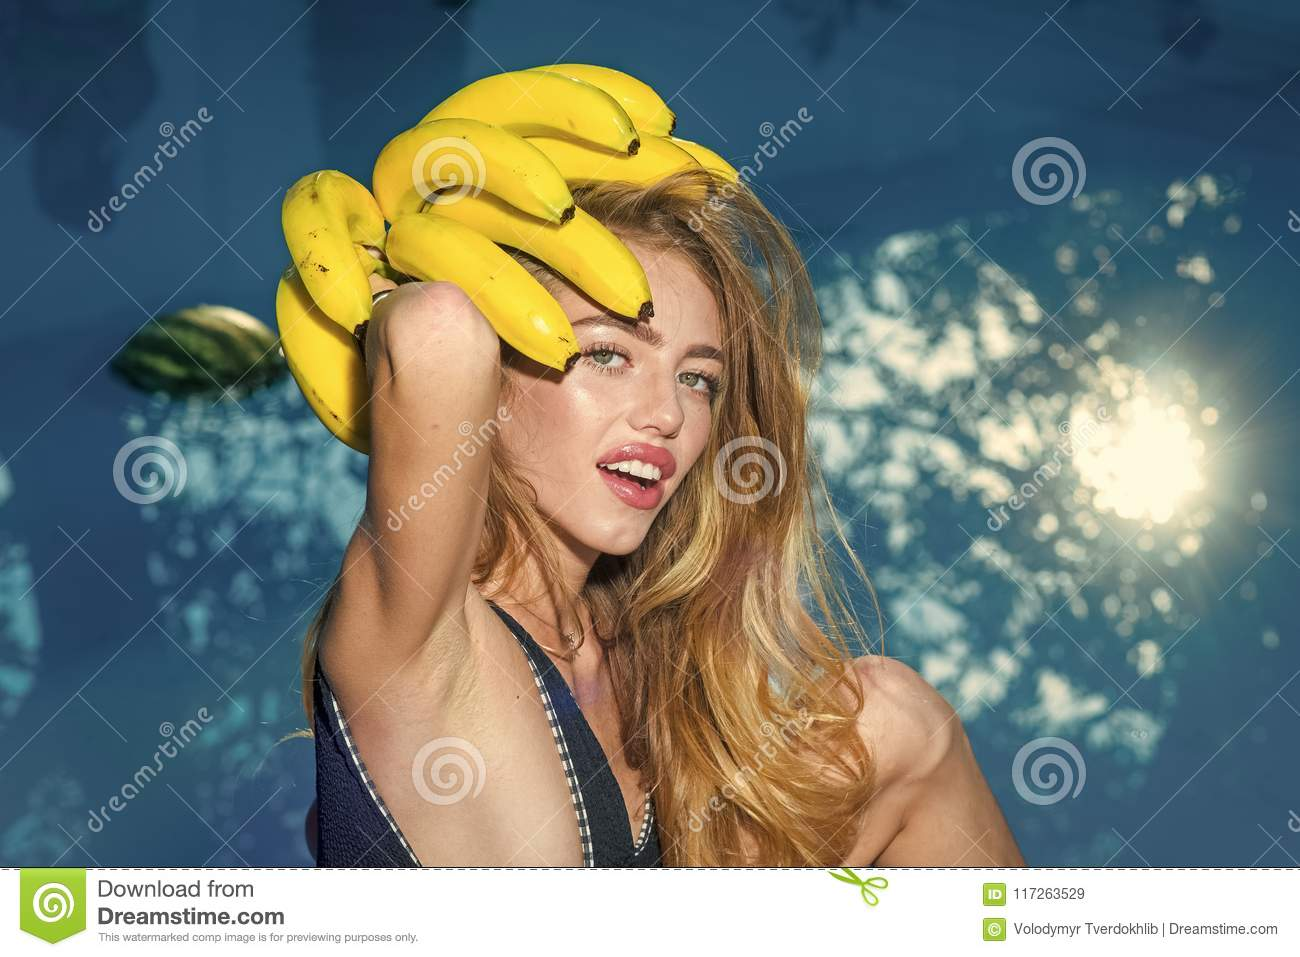 Dieting and healthy organic food, vegetarian. Vitamin in banana at girl near water. Woman relax in spa luxury swimming